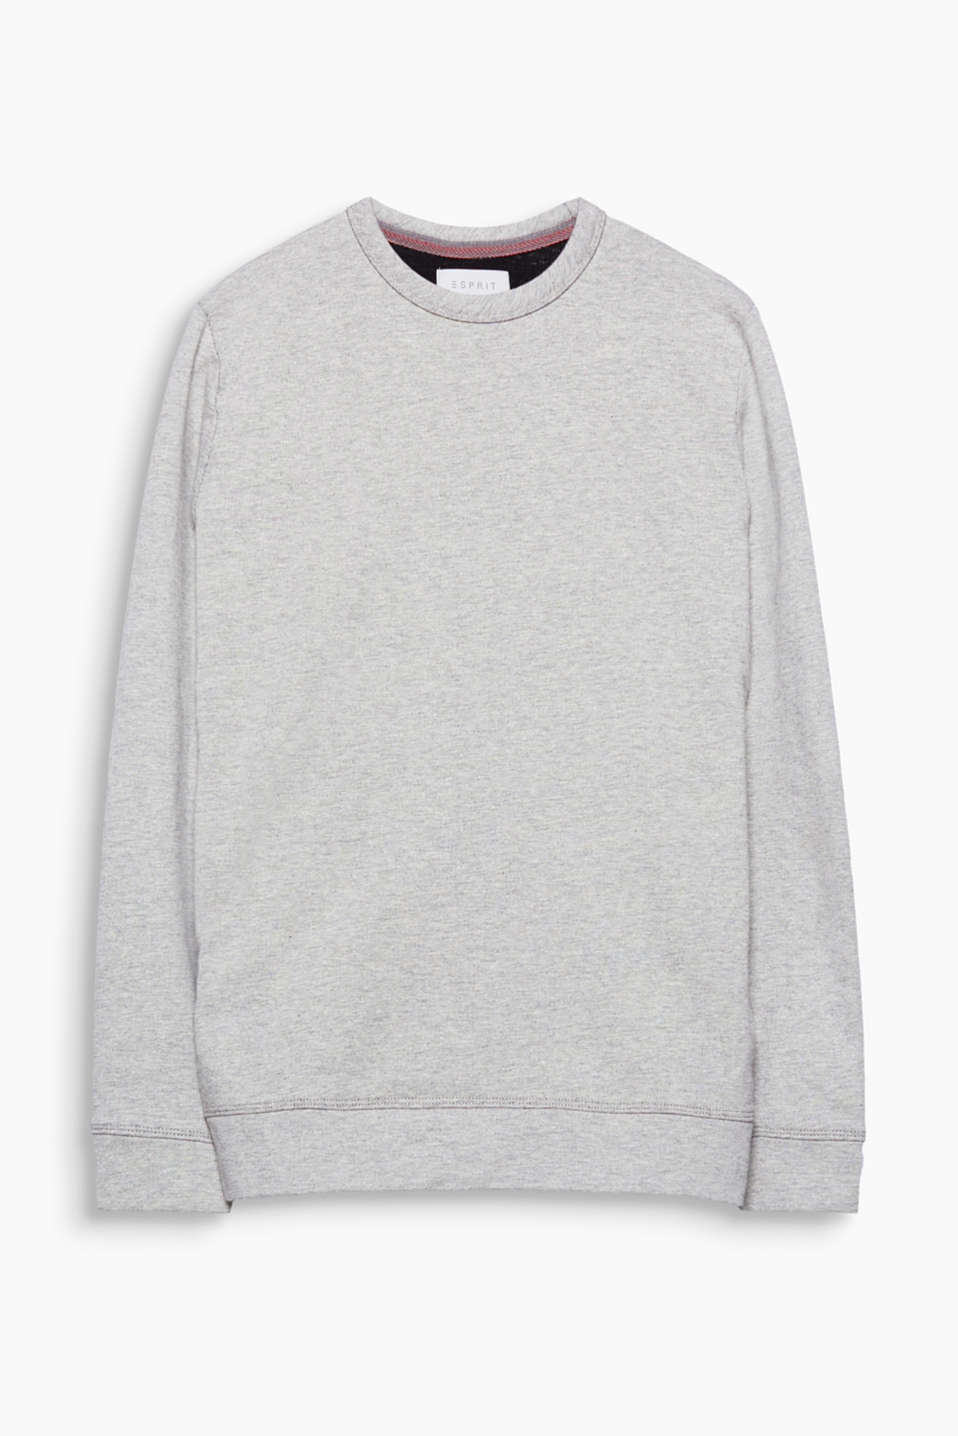 A sporty classic! The fine melange finish gives this sweatshirt a modern, striking vibe.